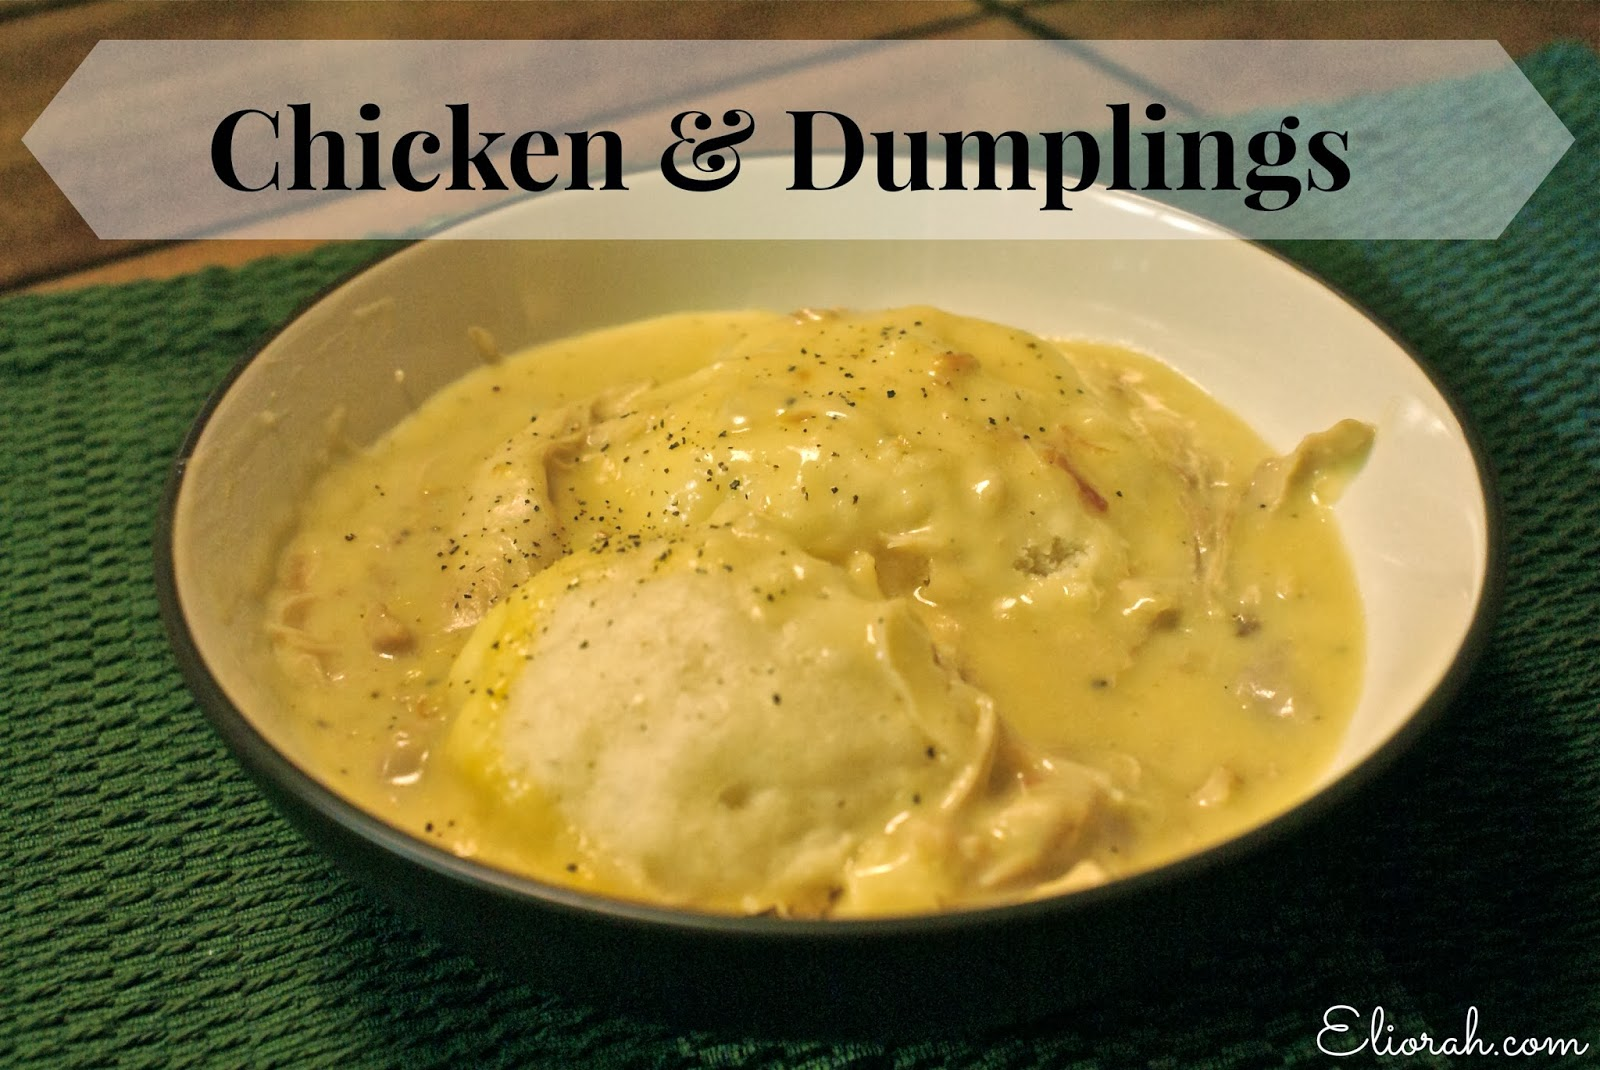 Eliorah: Chicken & Dumplings